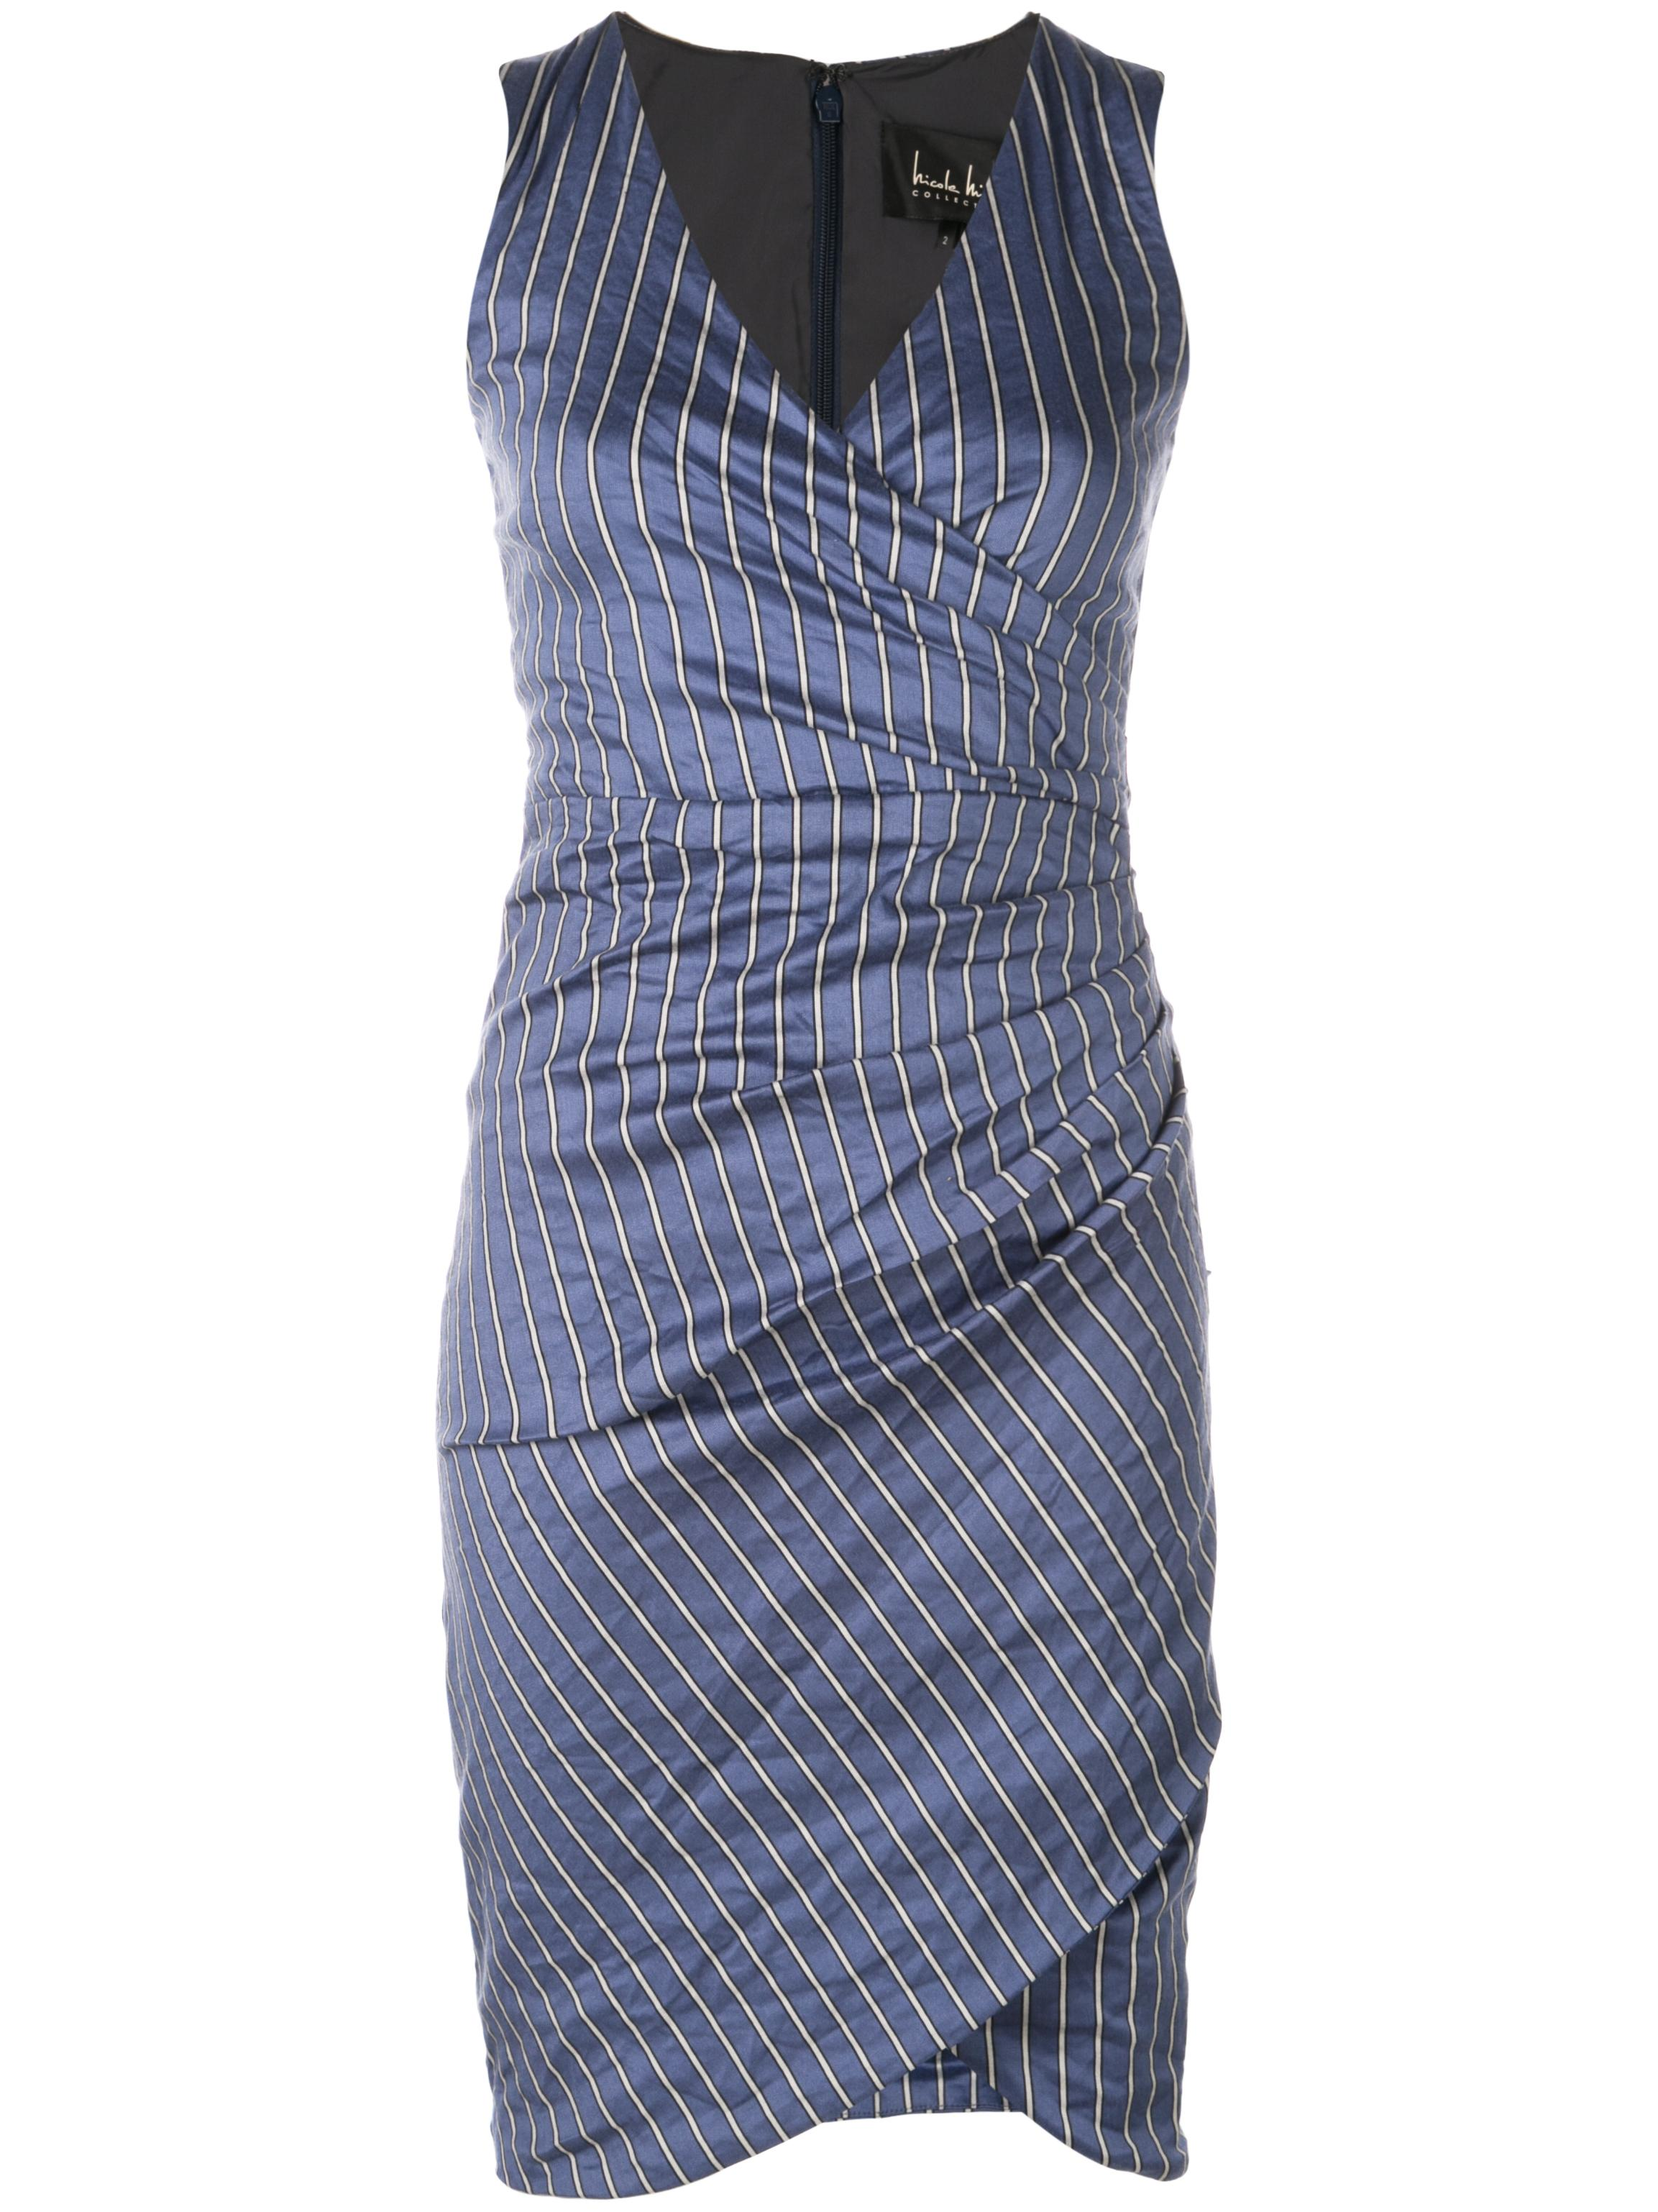 STRIPED COTTON METAL STEFANI DRESS